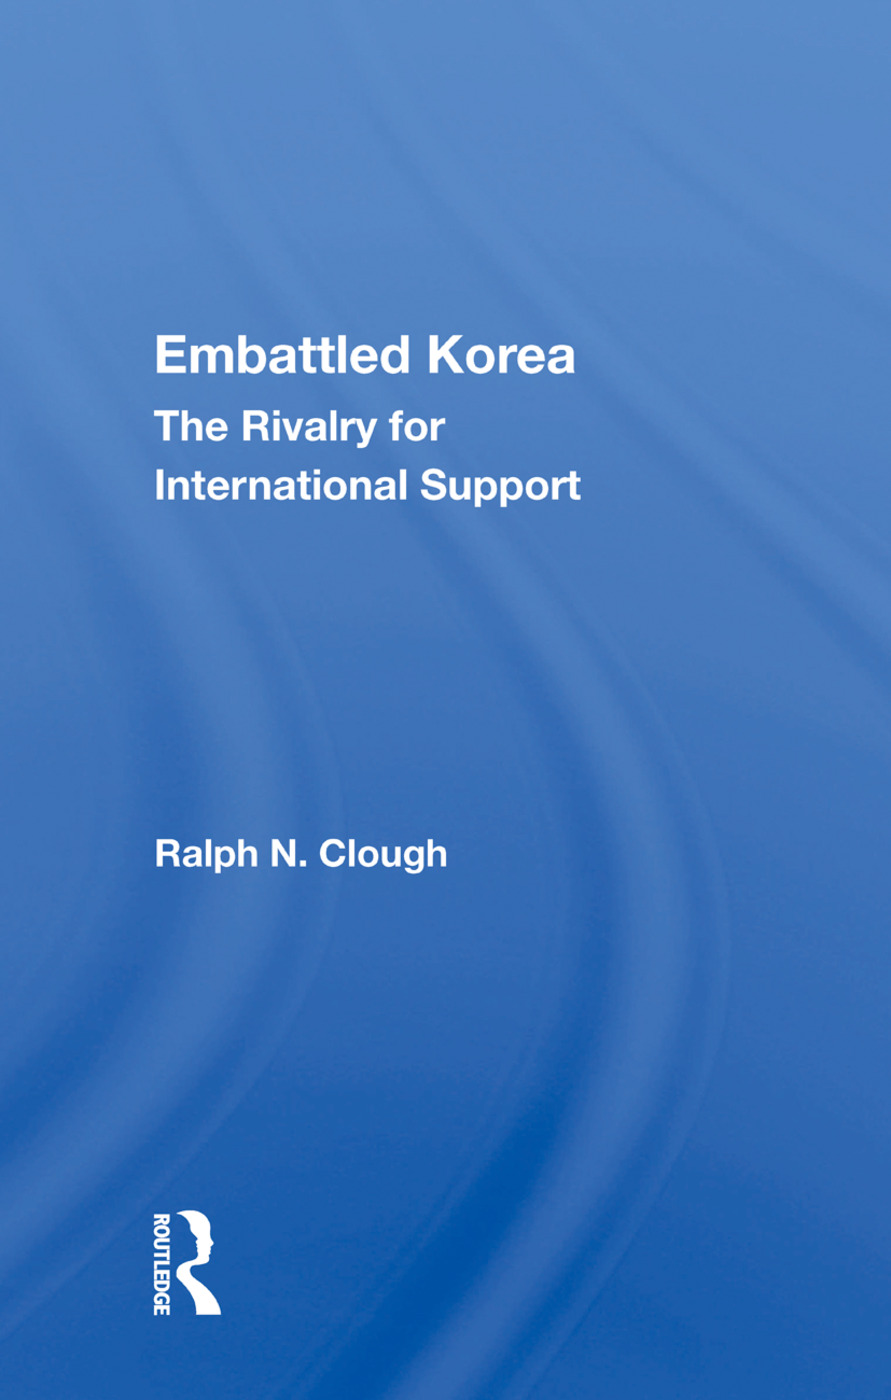 Embattled Korea: The Rivalry for International Support book cover